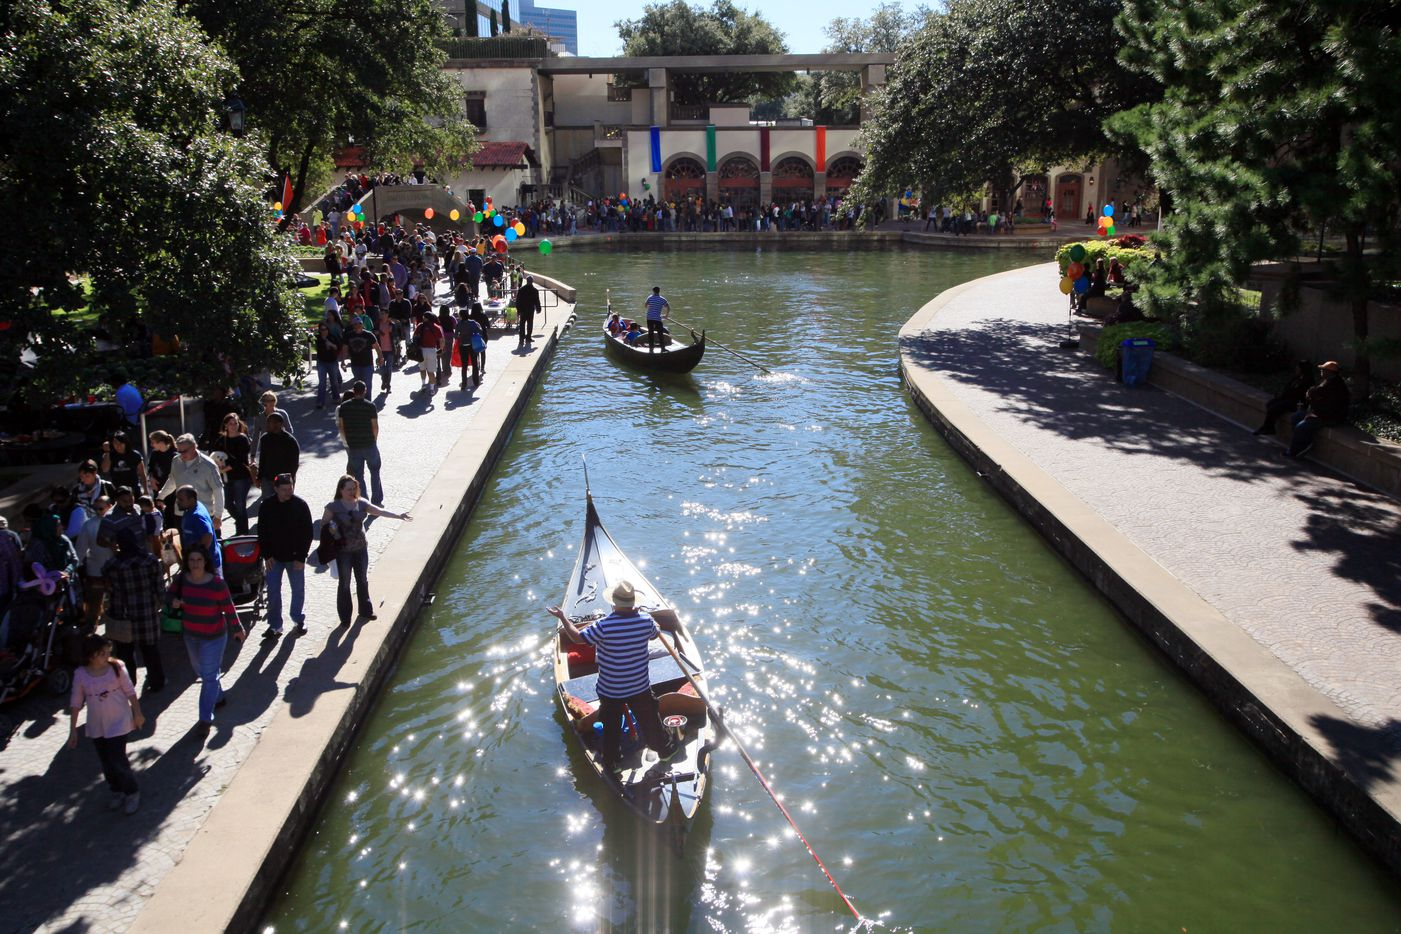 Gondolas move along the water before stopping for passengers at the revived Canal Fest, in Oct., 2013 in the Las Colinas area of Irving.